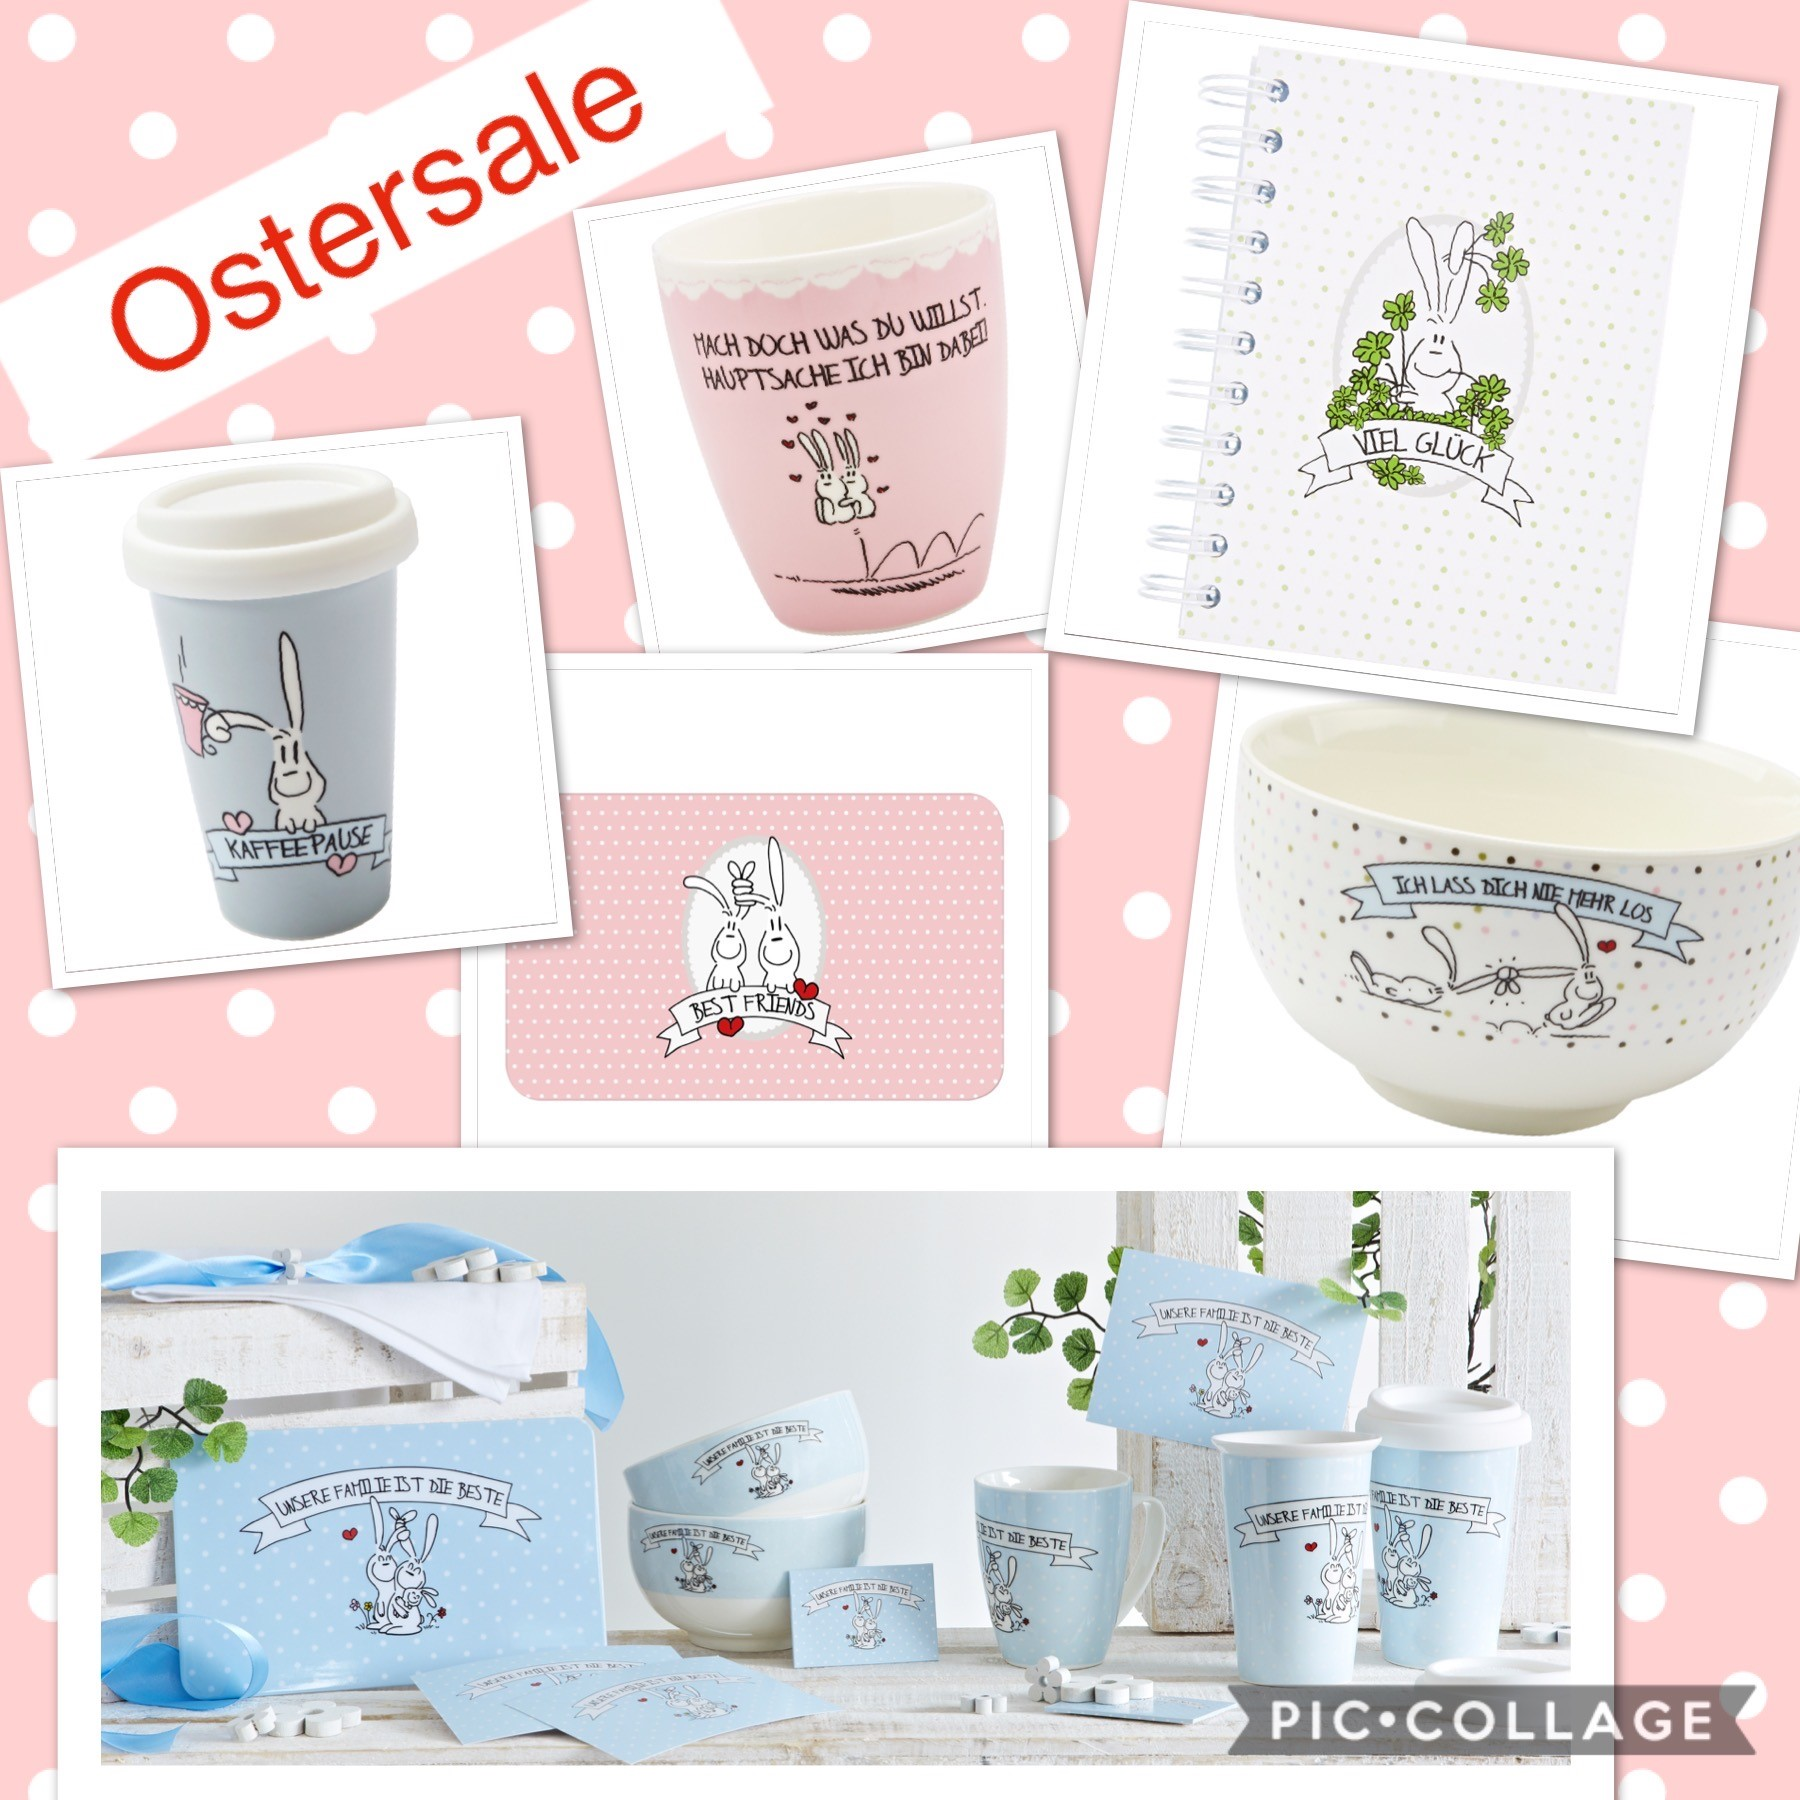 Ostersale